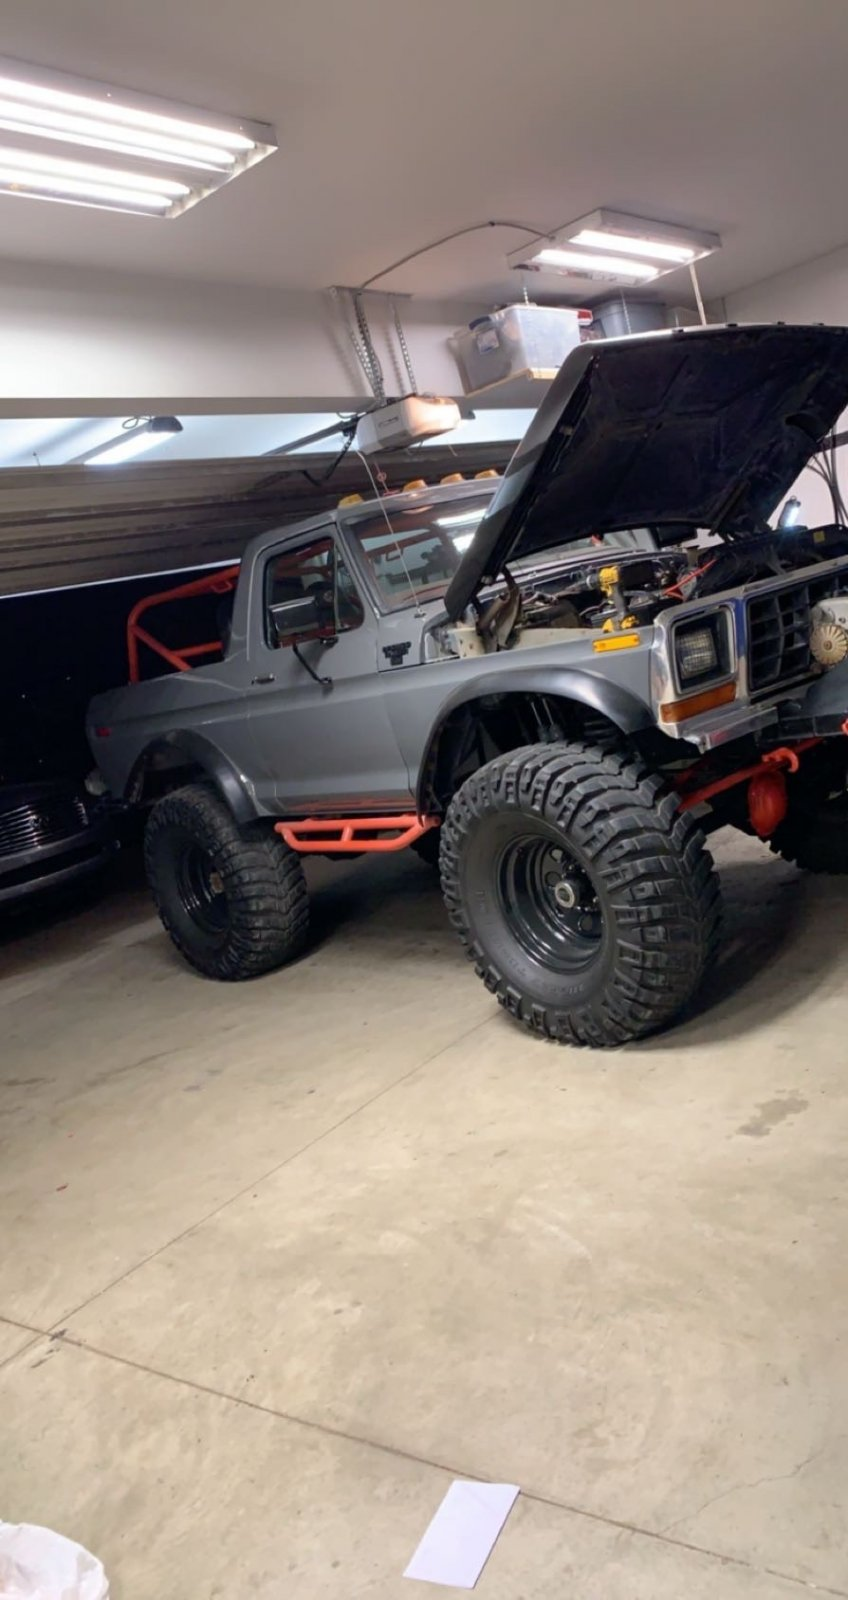 16 Year Old Built His Dream Ford Bronco 6.jpg